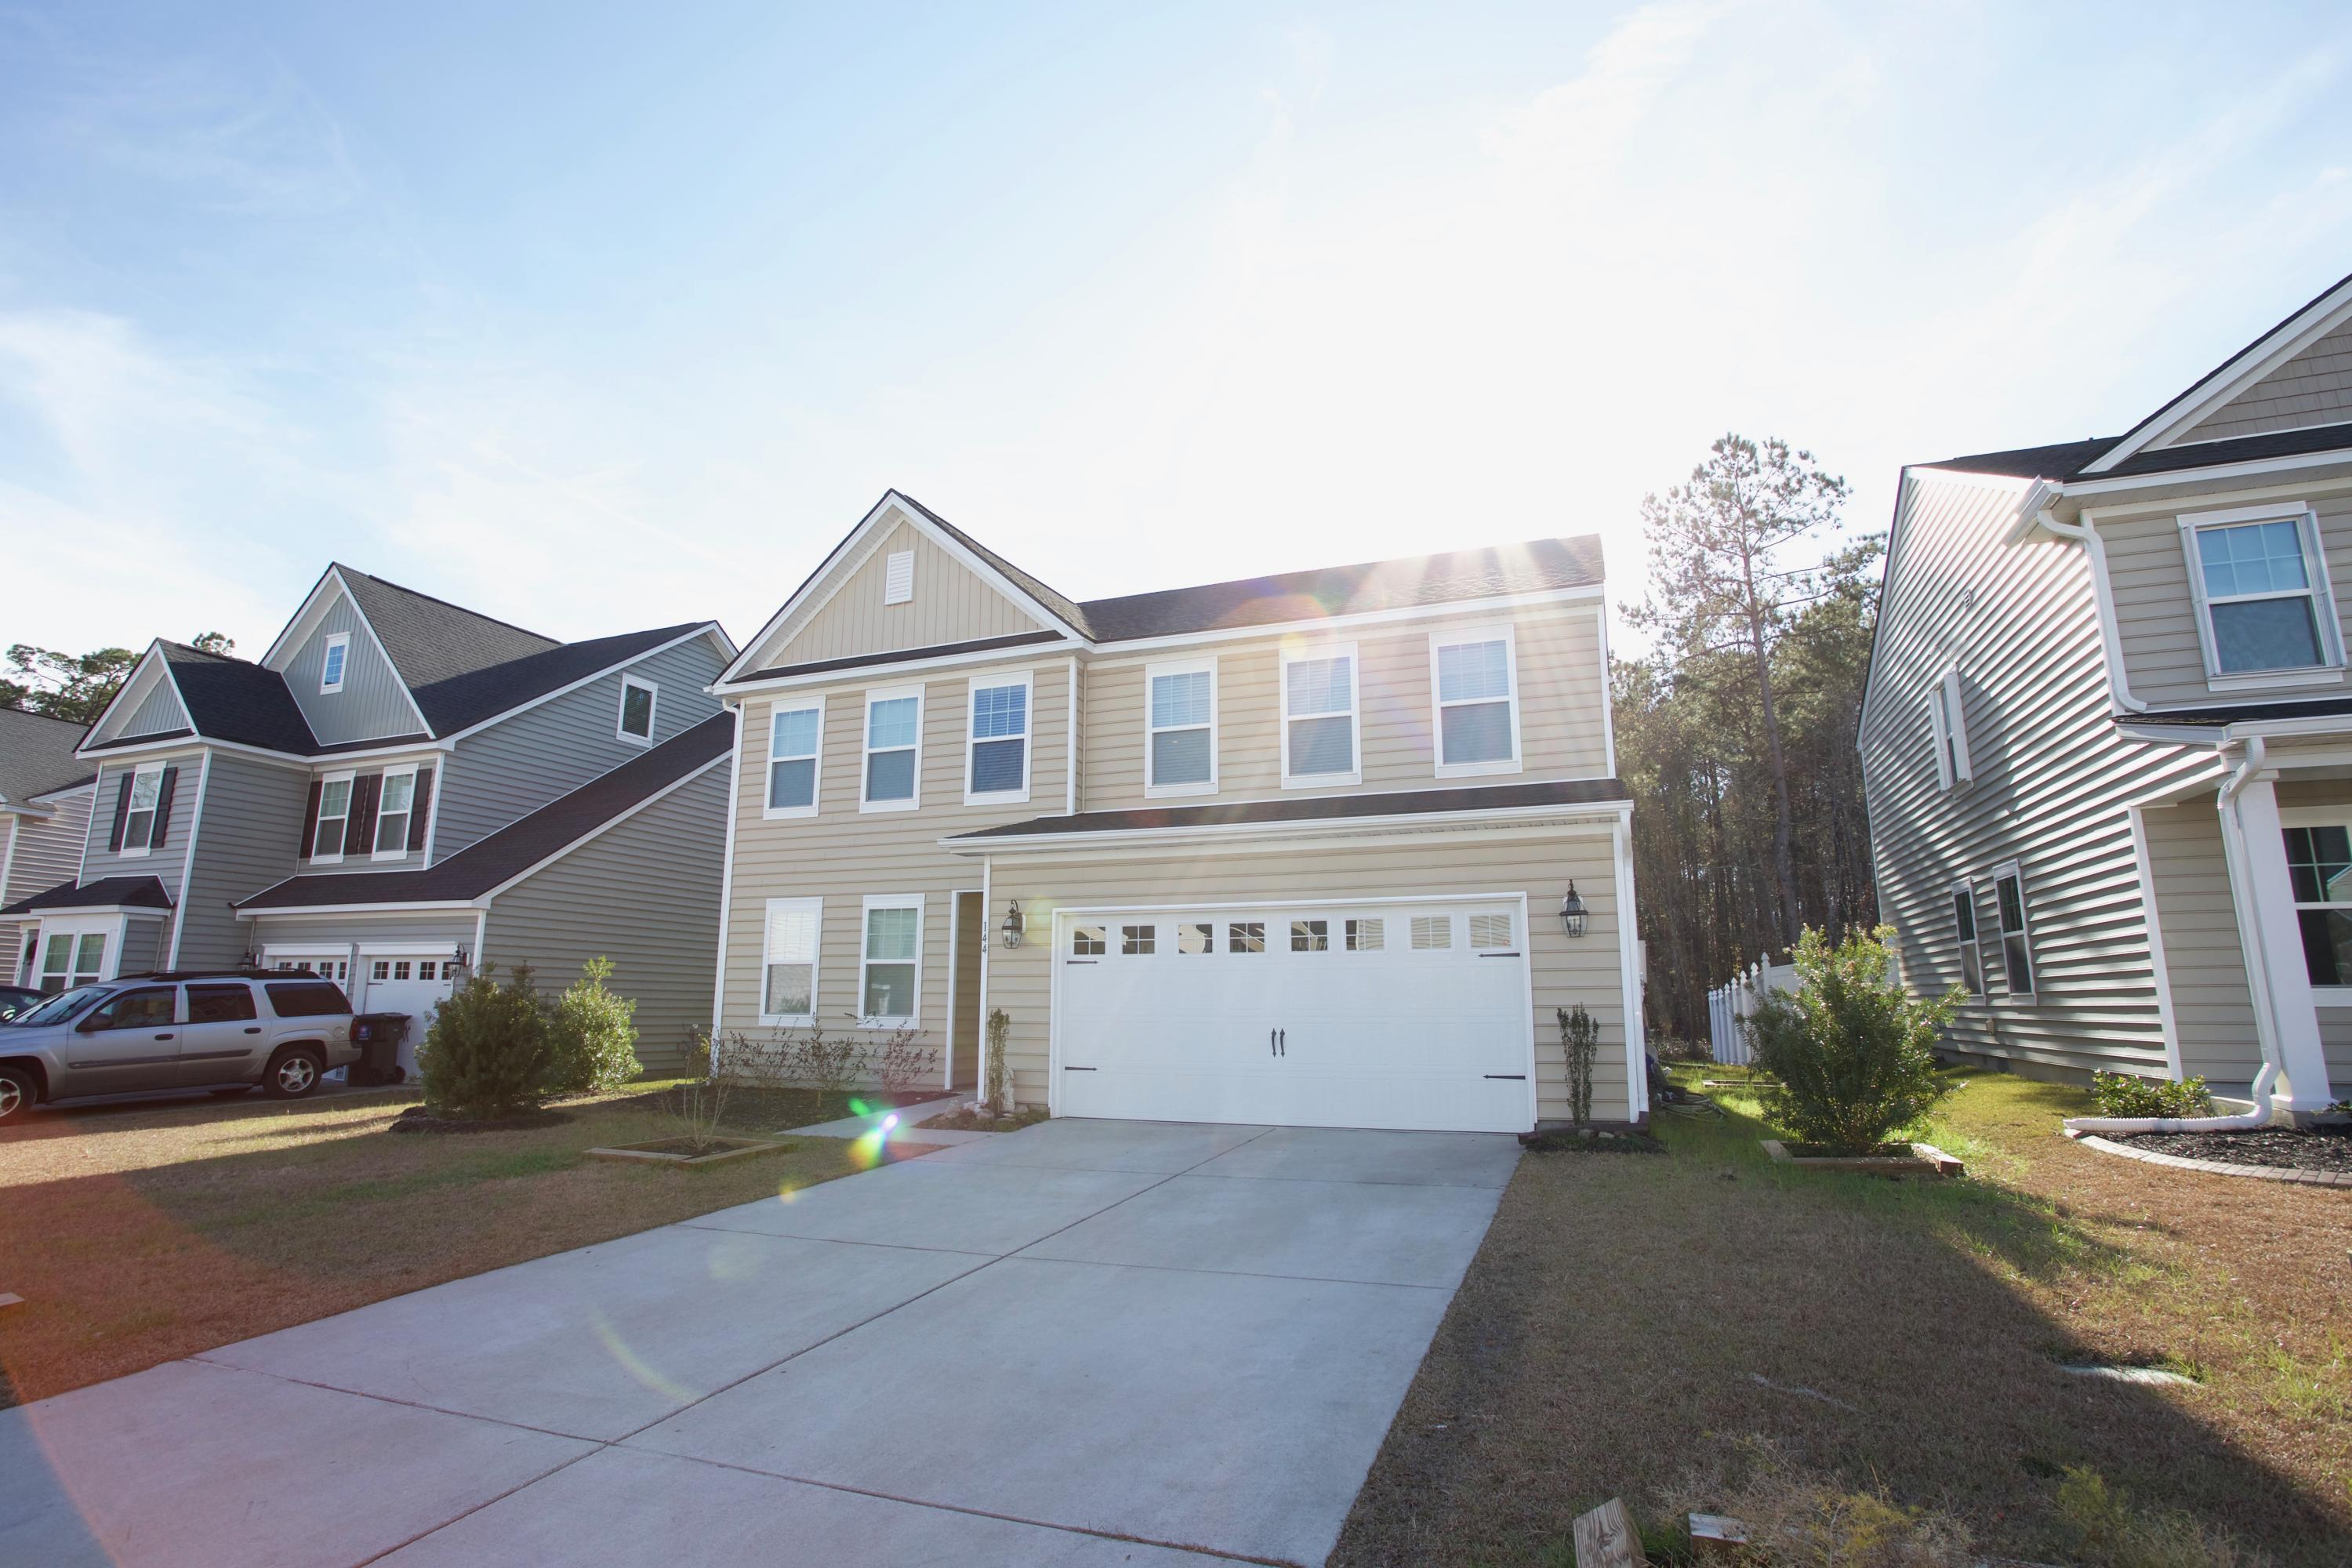 144 Blackwater Way Moncks Corner, SC 29461